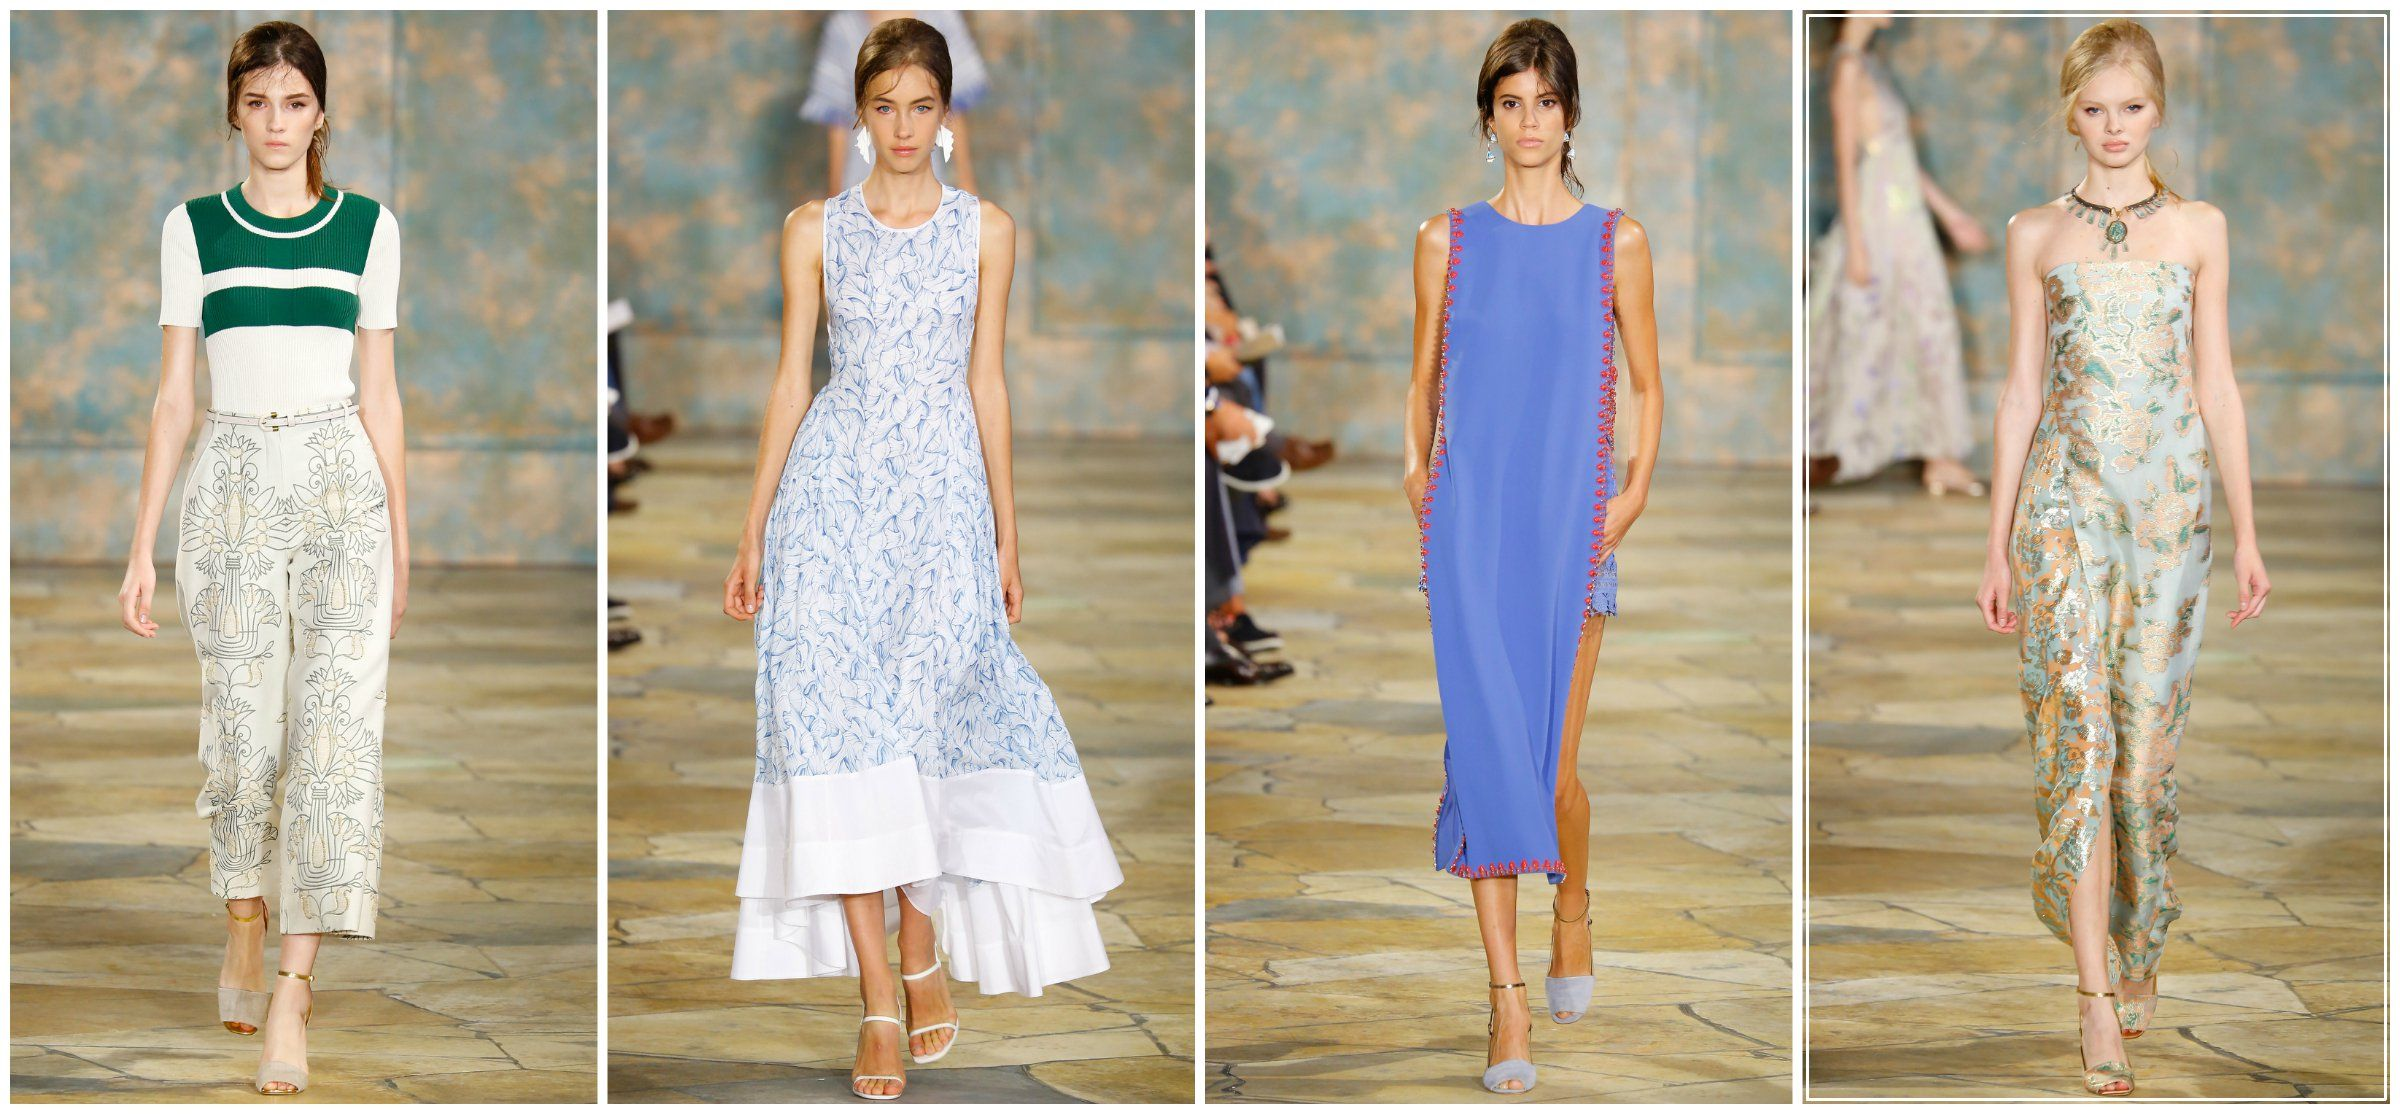 tory burch 2016 spring collection - Google Search